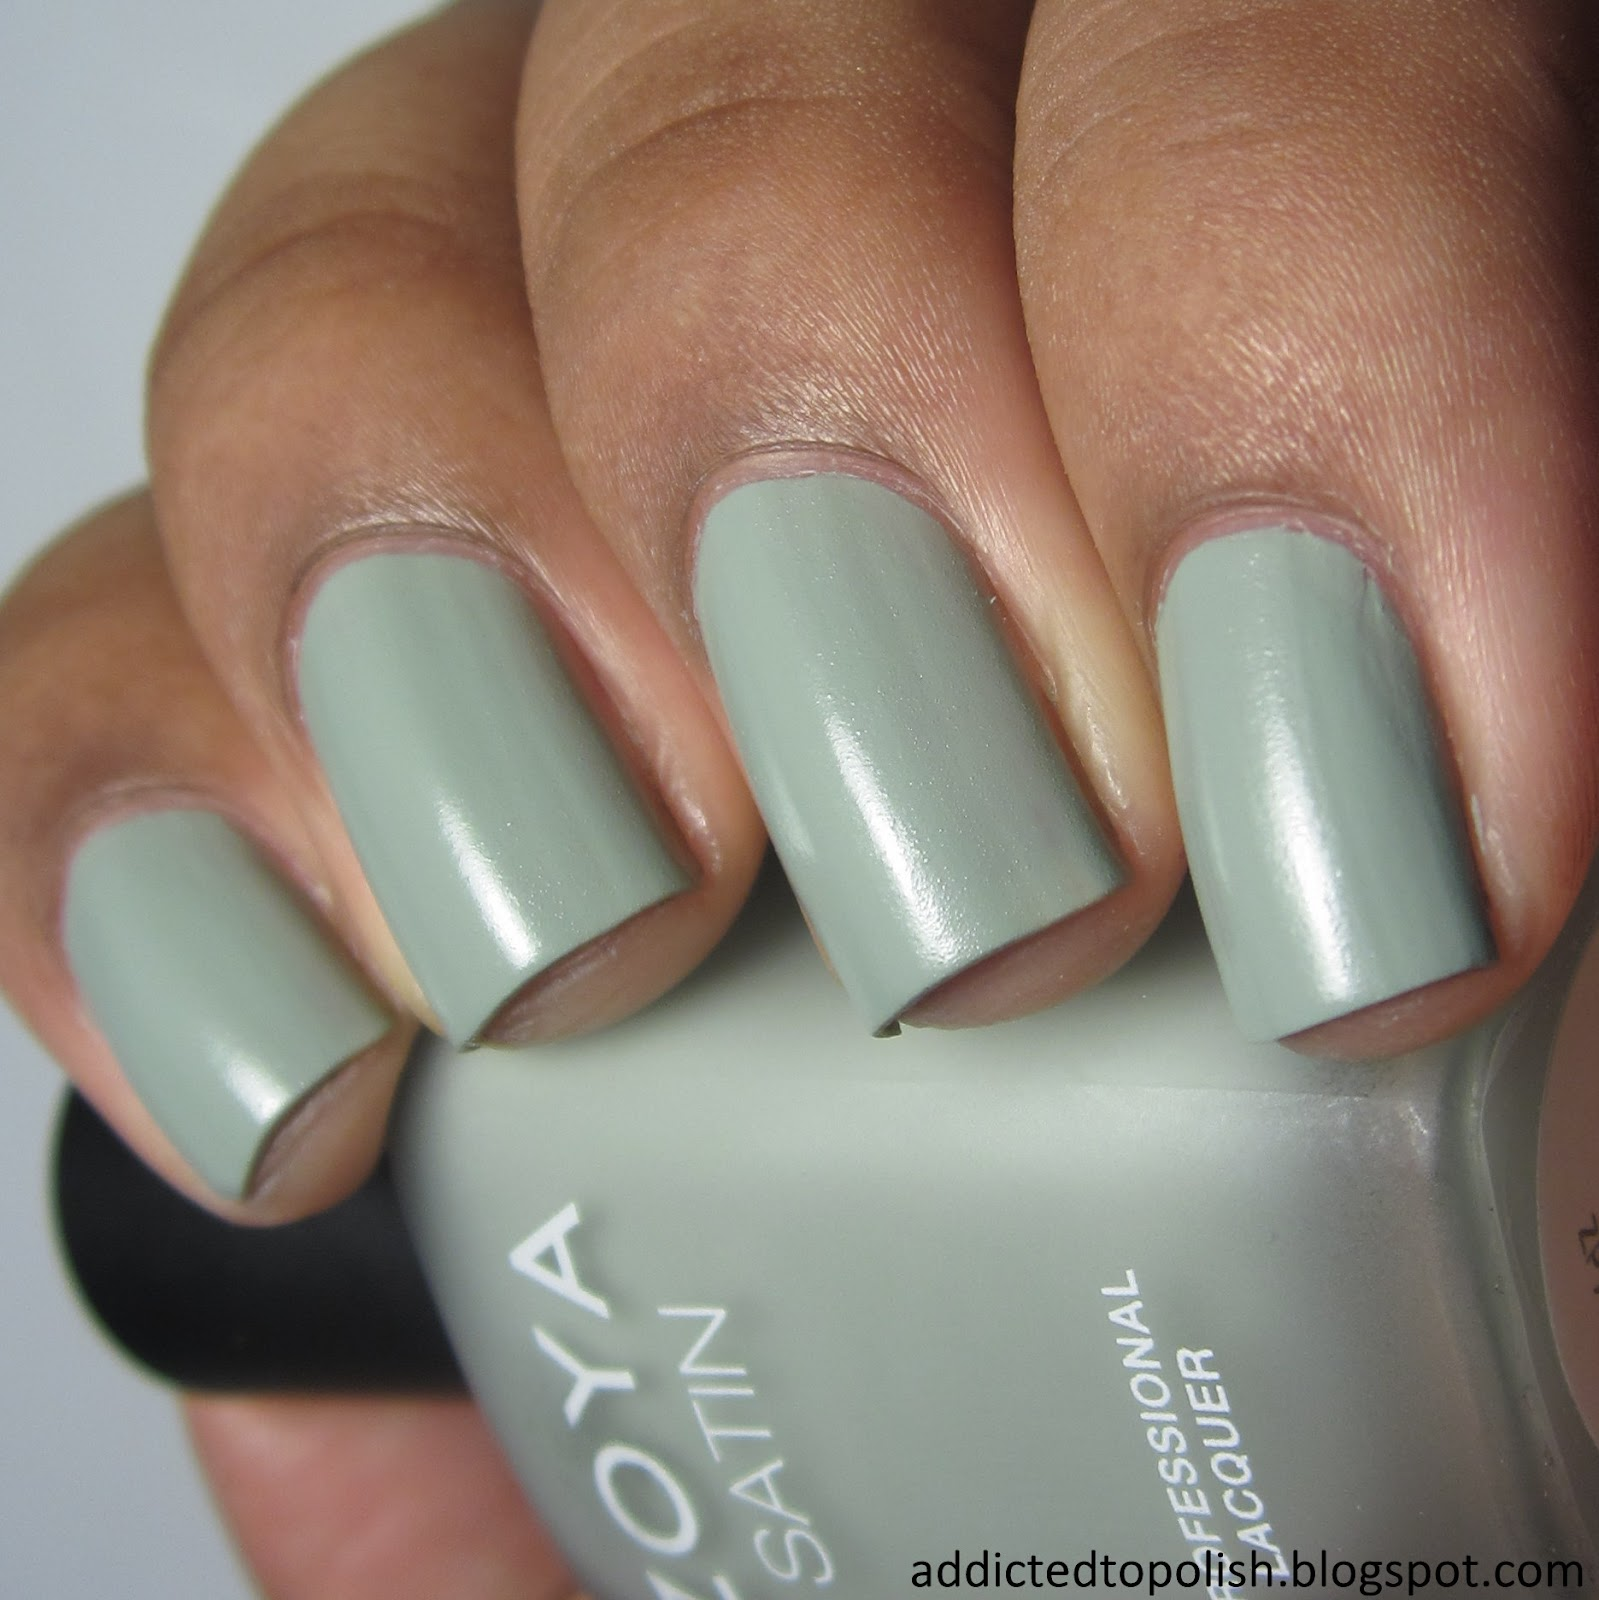 Zoya Sage swatches Addicted to polish